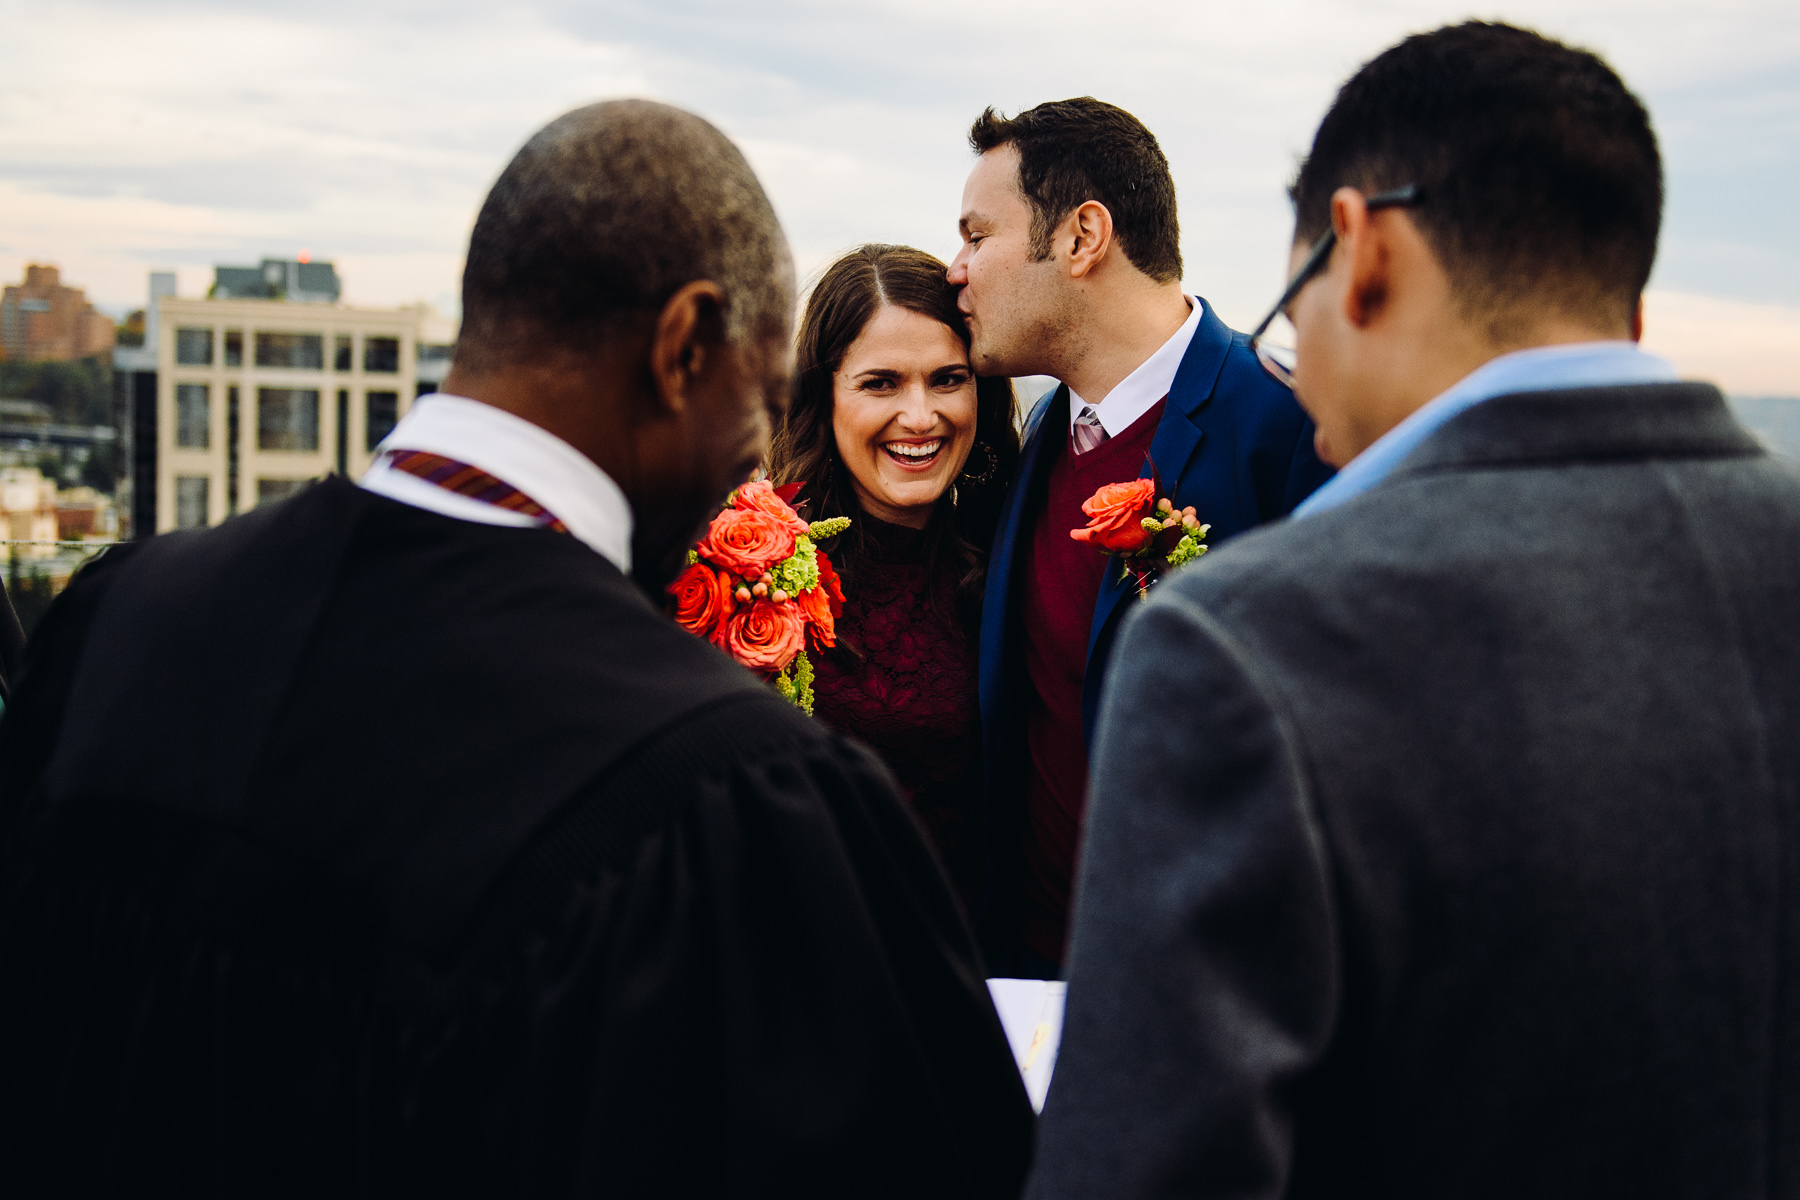 seattle courthouse wedding photo